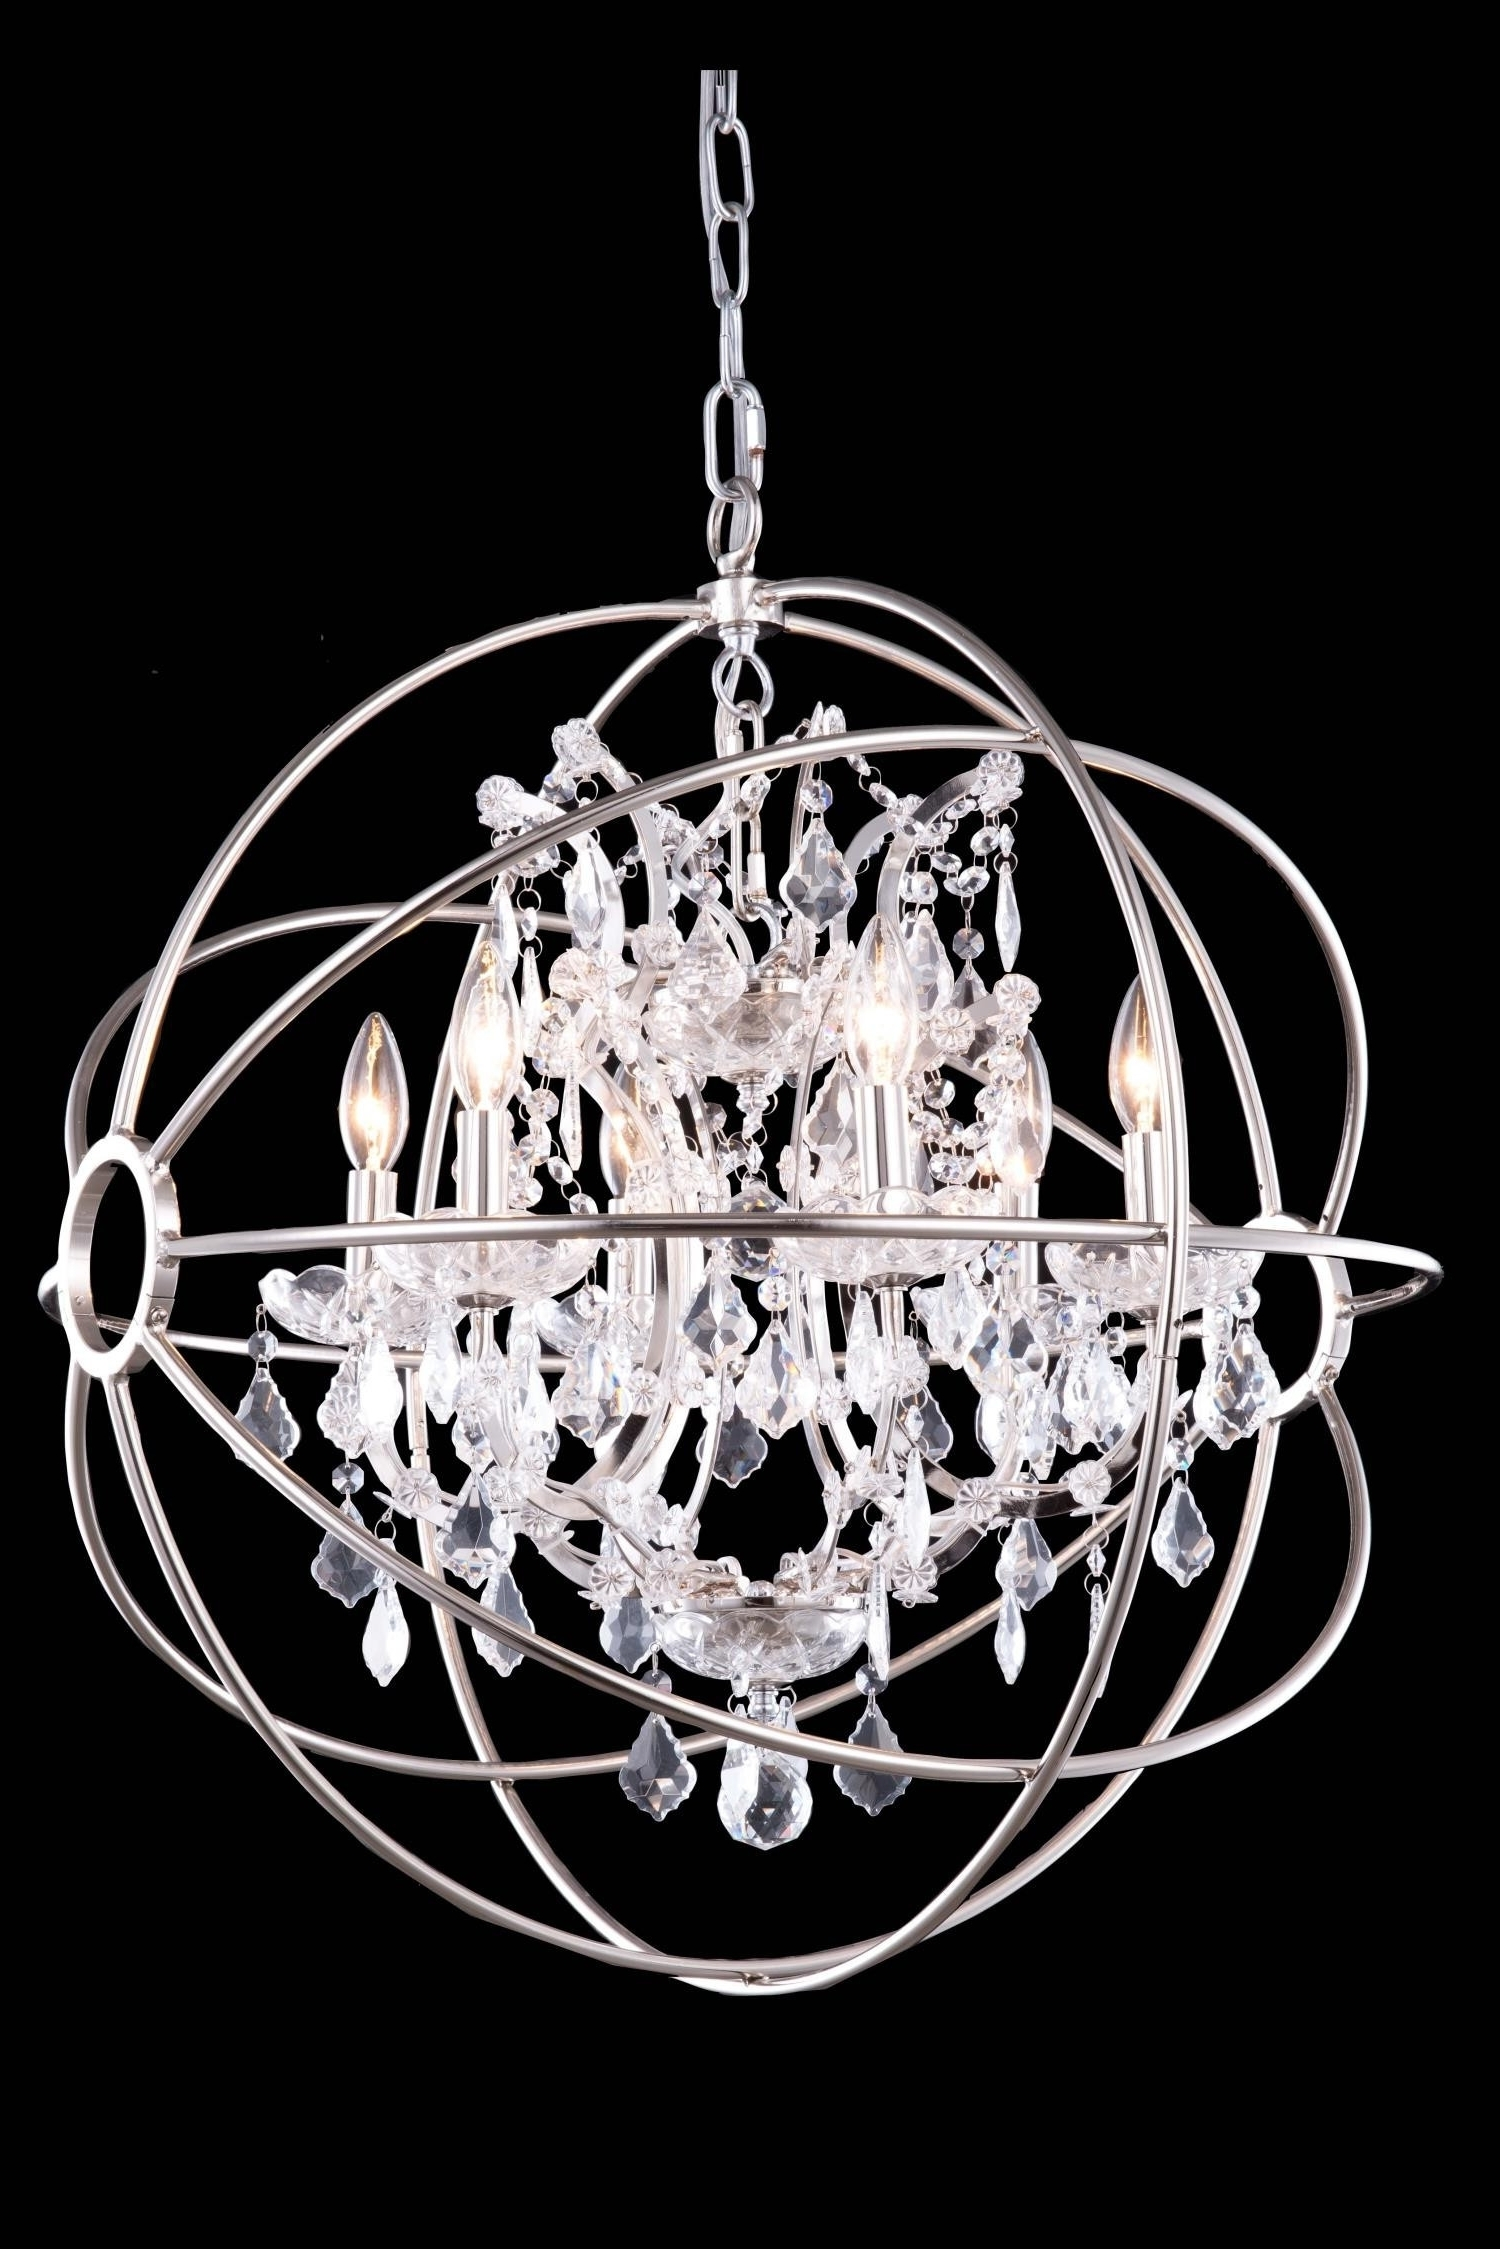 Globe Crystal Chandelier with regard to Fashionable Chandeliers : Magnificent Large Crystal Chandeliers Elegant 12 Best